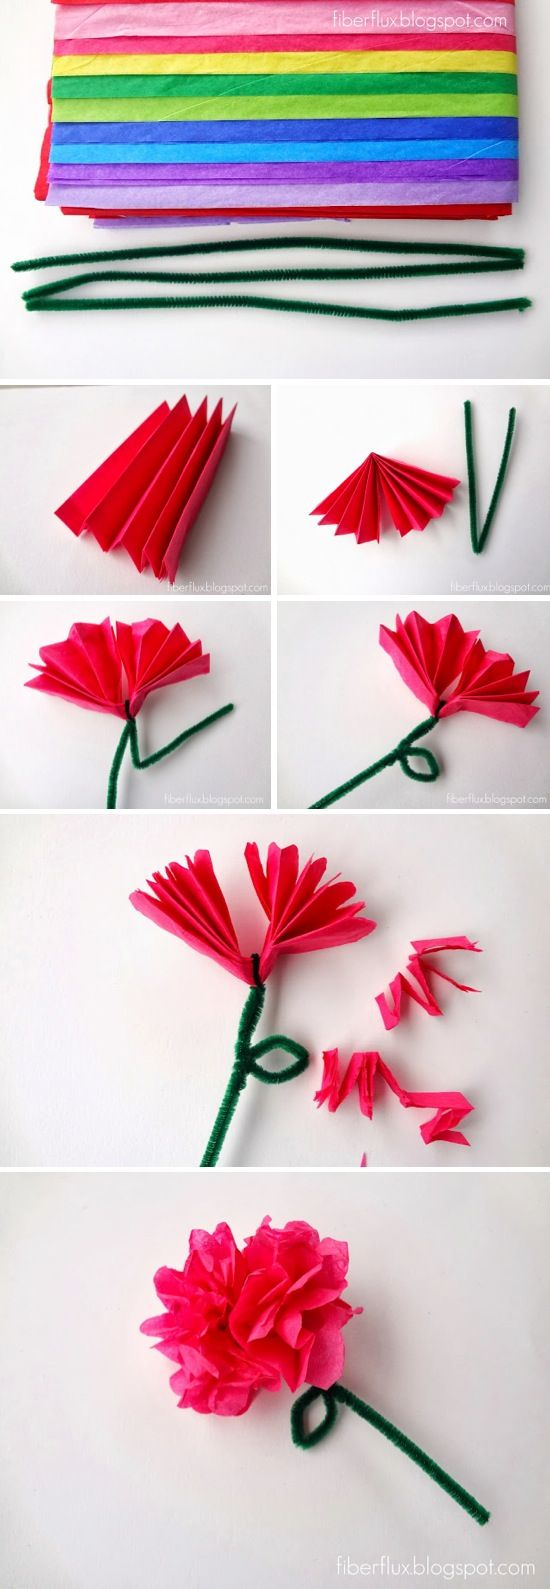 661 Best Paper Flower Tutorial Images On Pinterest Shower Banners